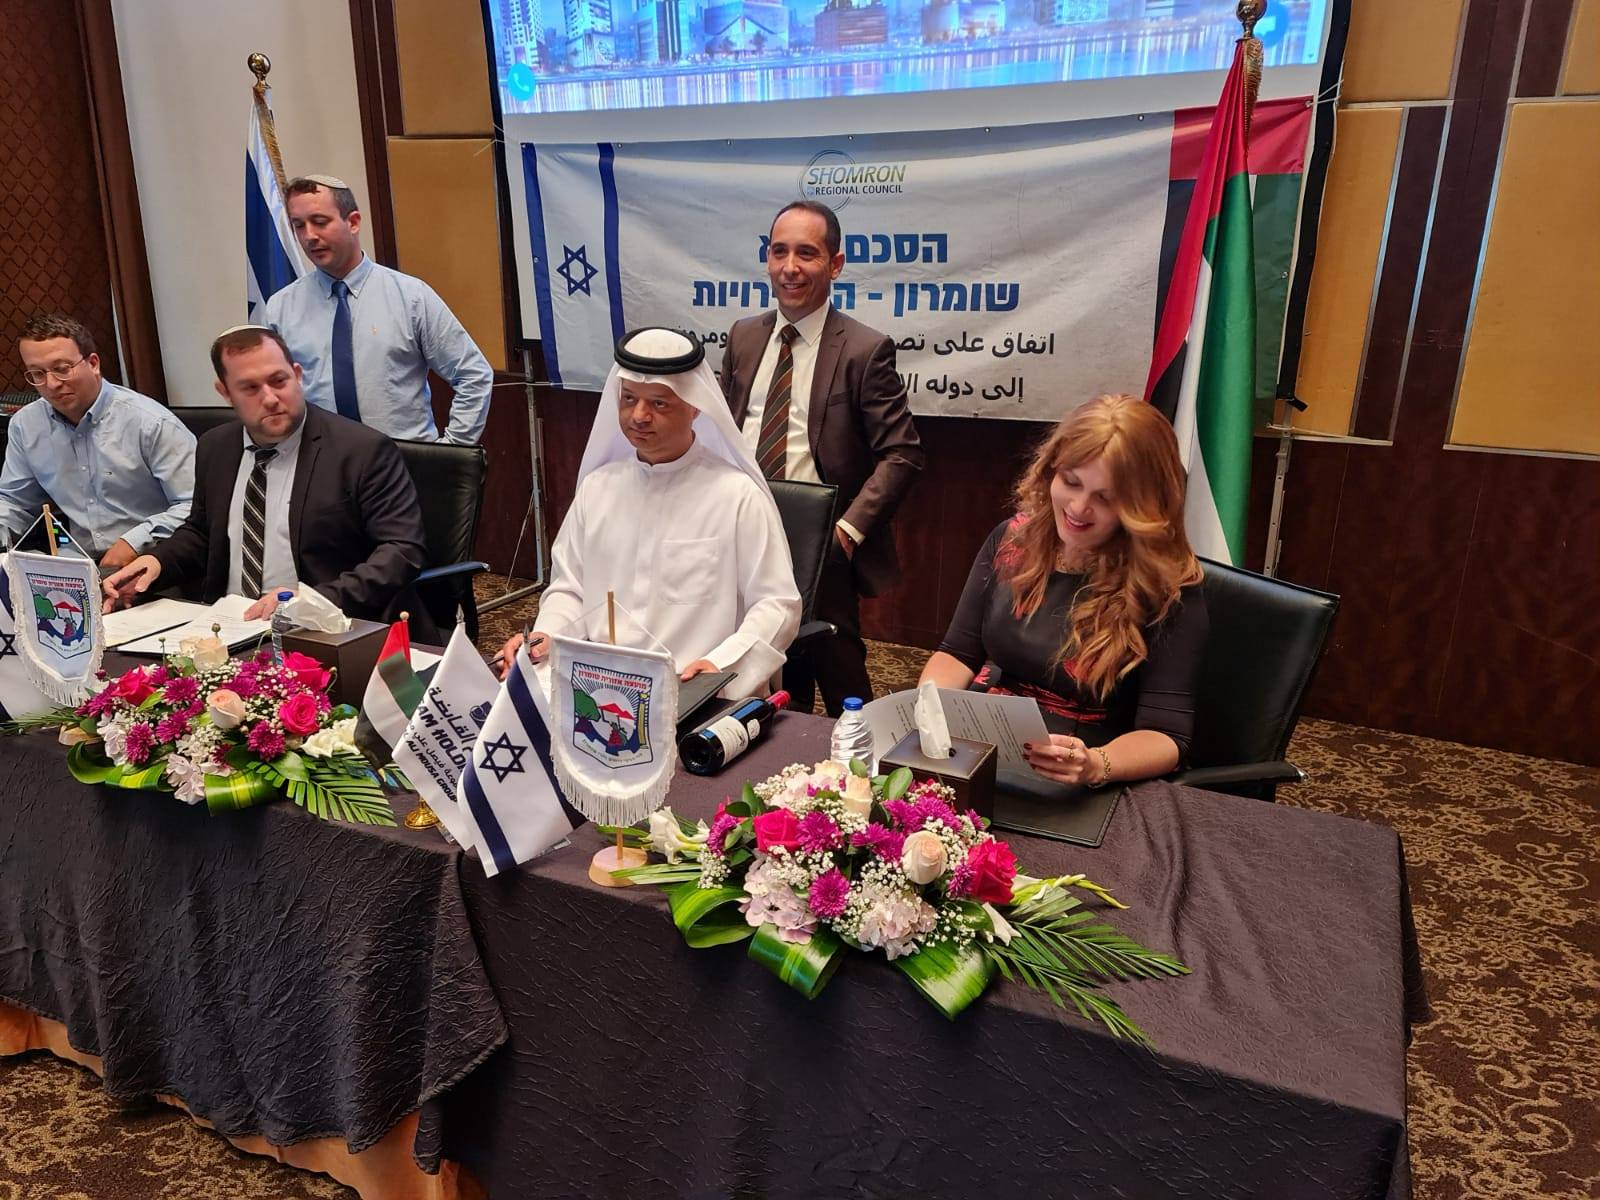 Tura Winery co-owner Vered Ben Sa'adon, right, and Samaria Regional Council head Yossi Dagan, second from left, attend a signing ceremony for a business deal in Dubai, December 7, 2020 (courtesy Tura Winery)